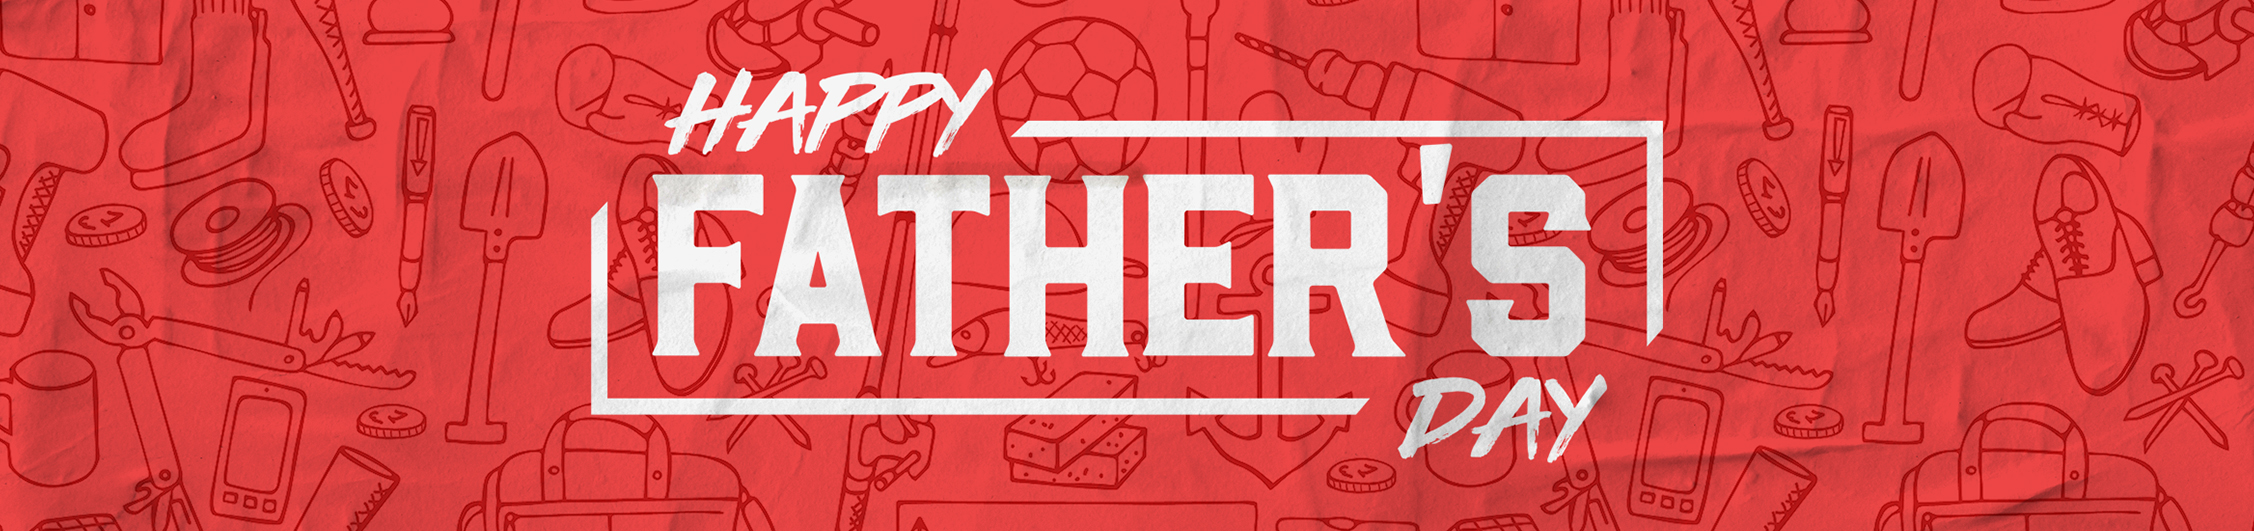 fathers-day-web-banner.jpg